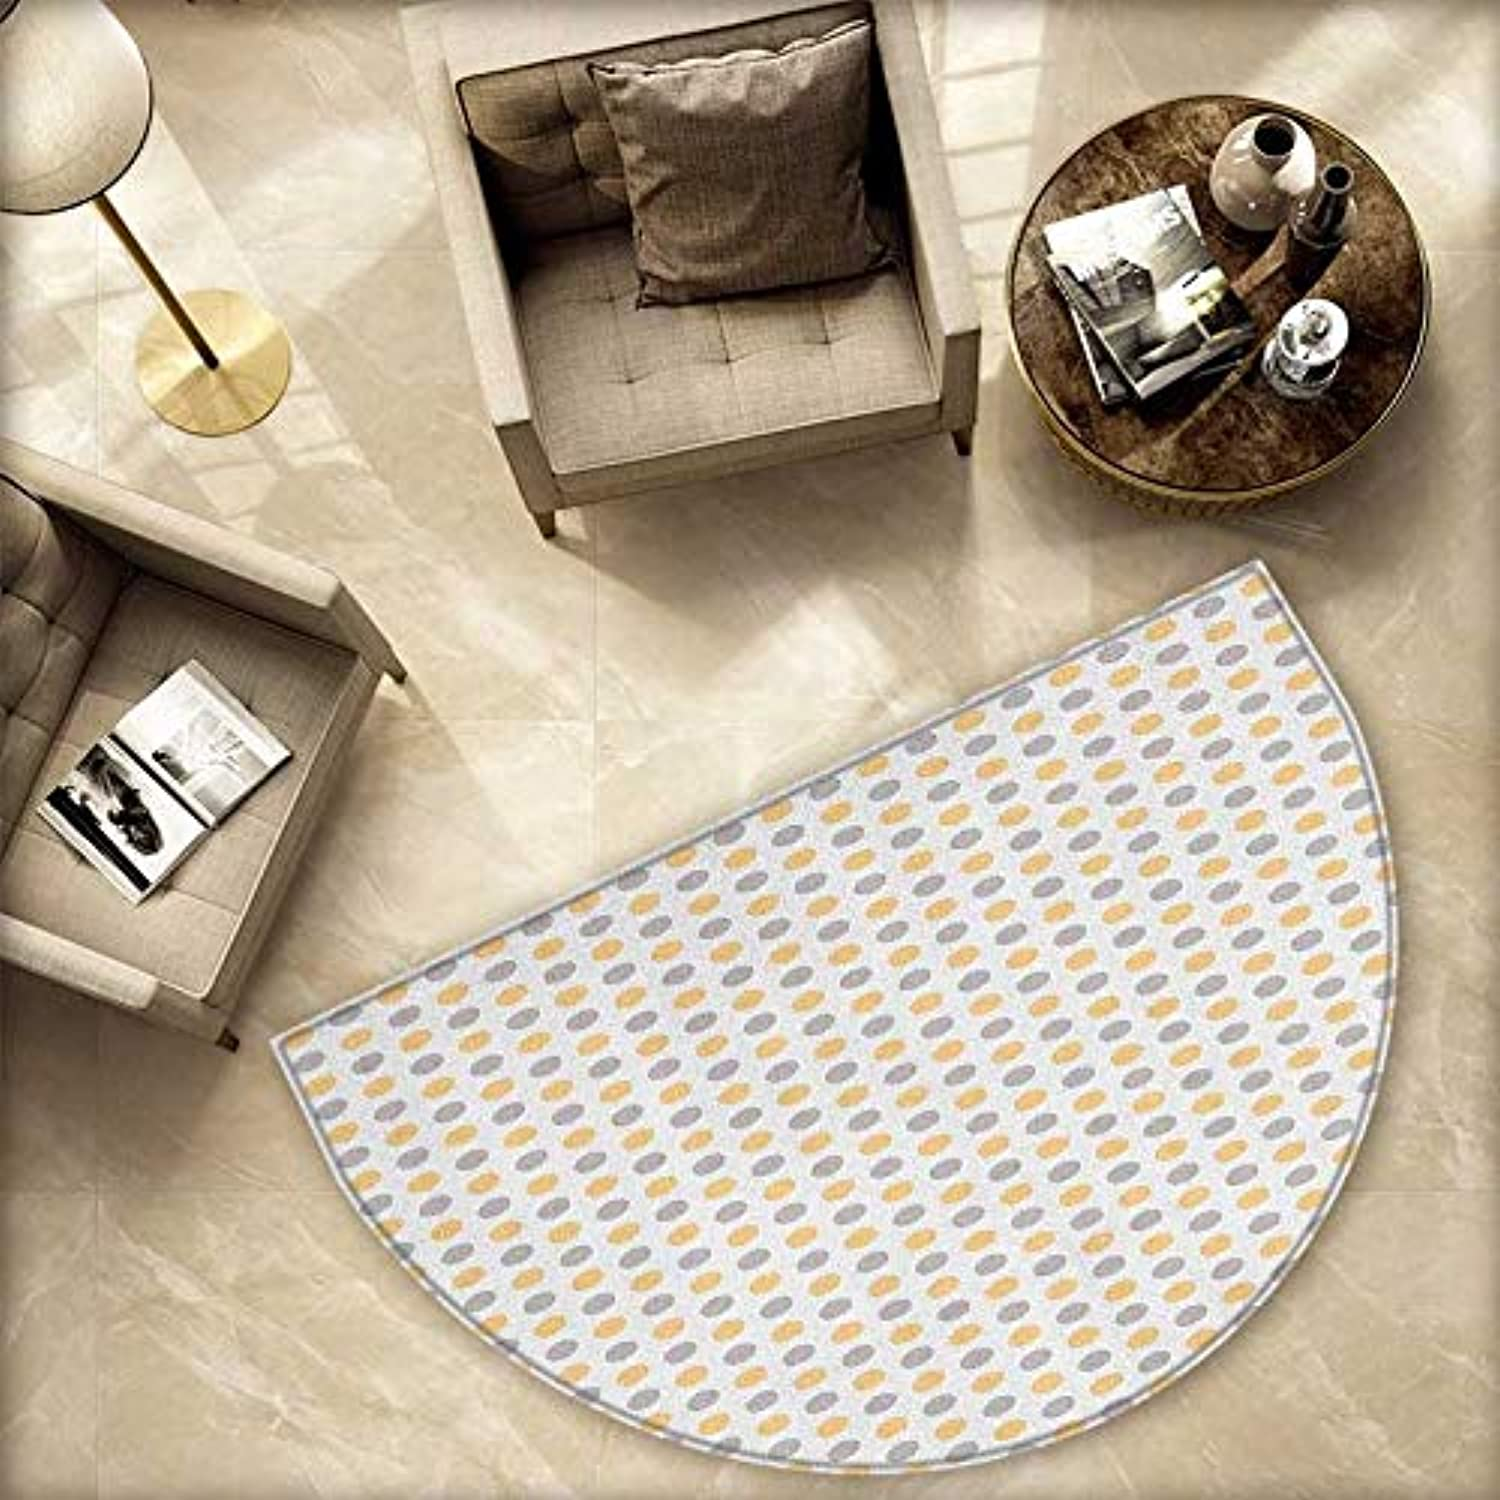 Vintage Semicircle Doormat bluee and orange Dots White Background Classic Shabby colord Pattern Halfmoon doormats H 78.7  xD 118.1  orange White Cadet bluee